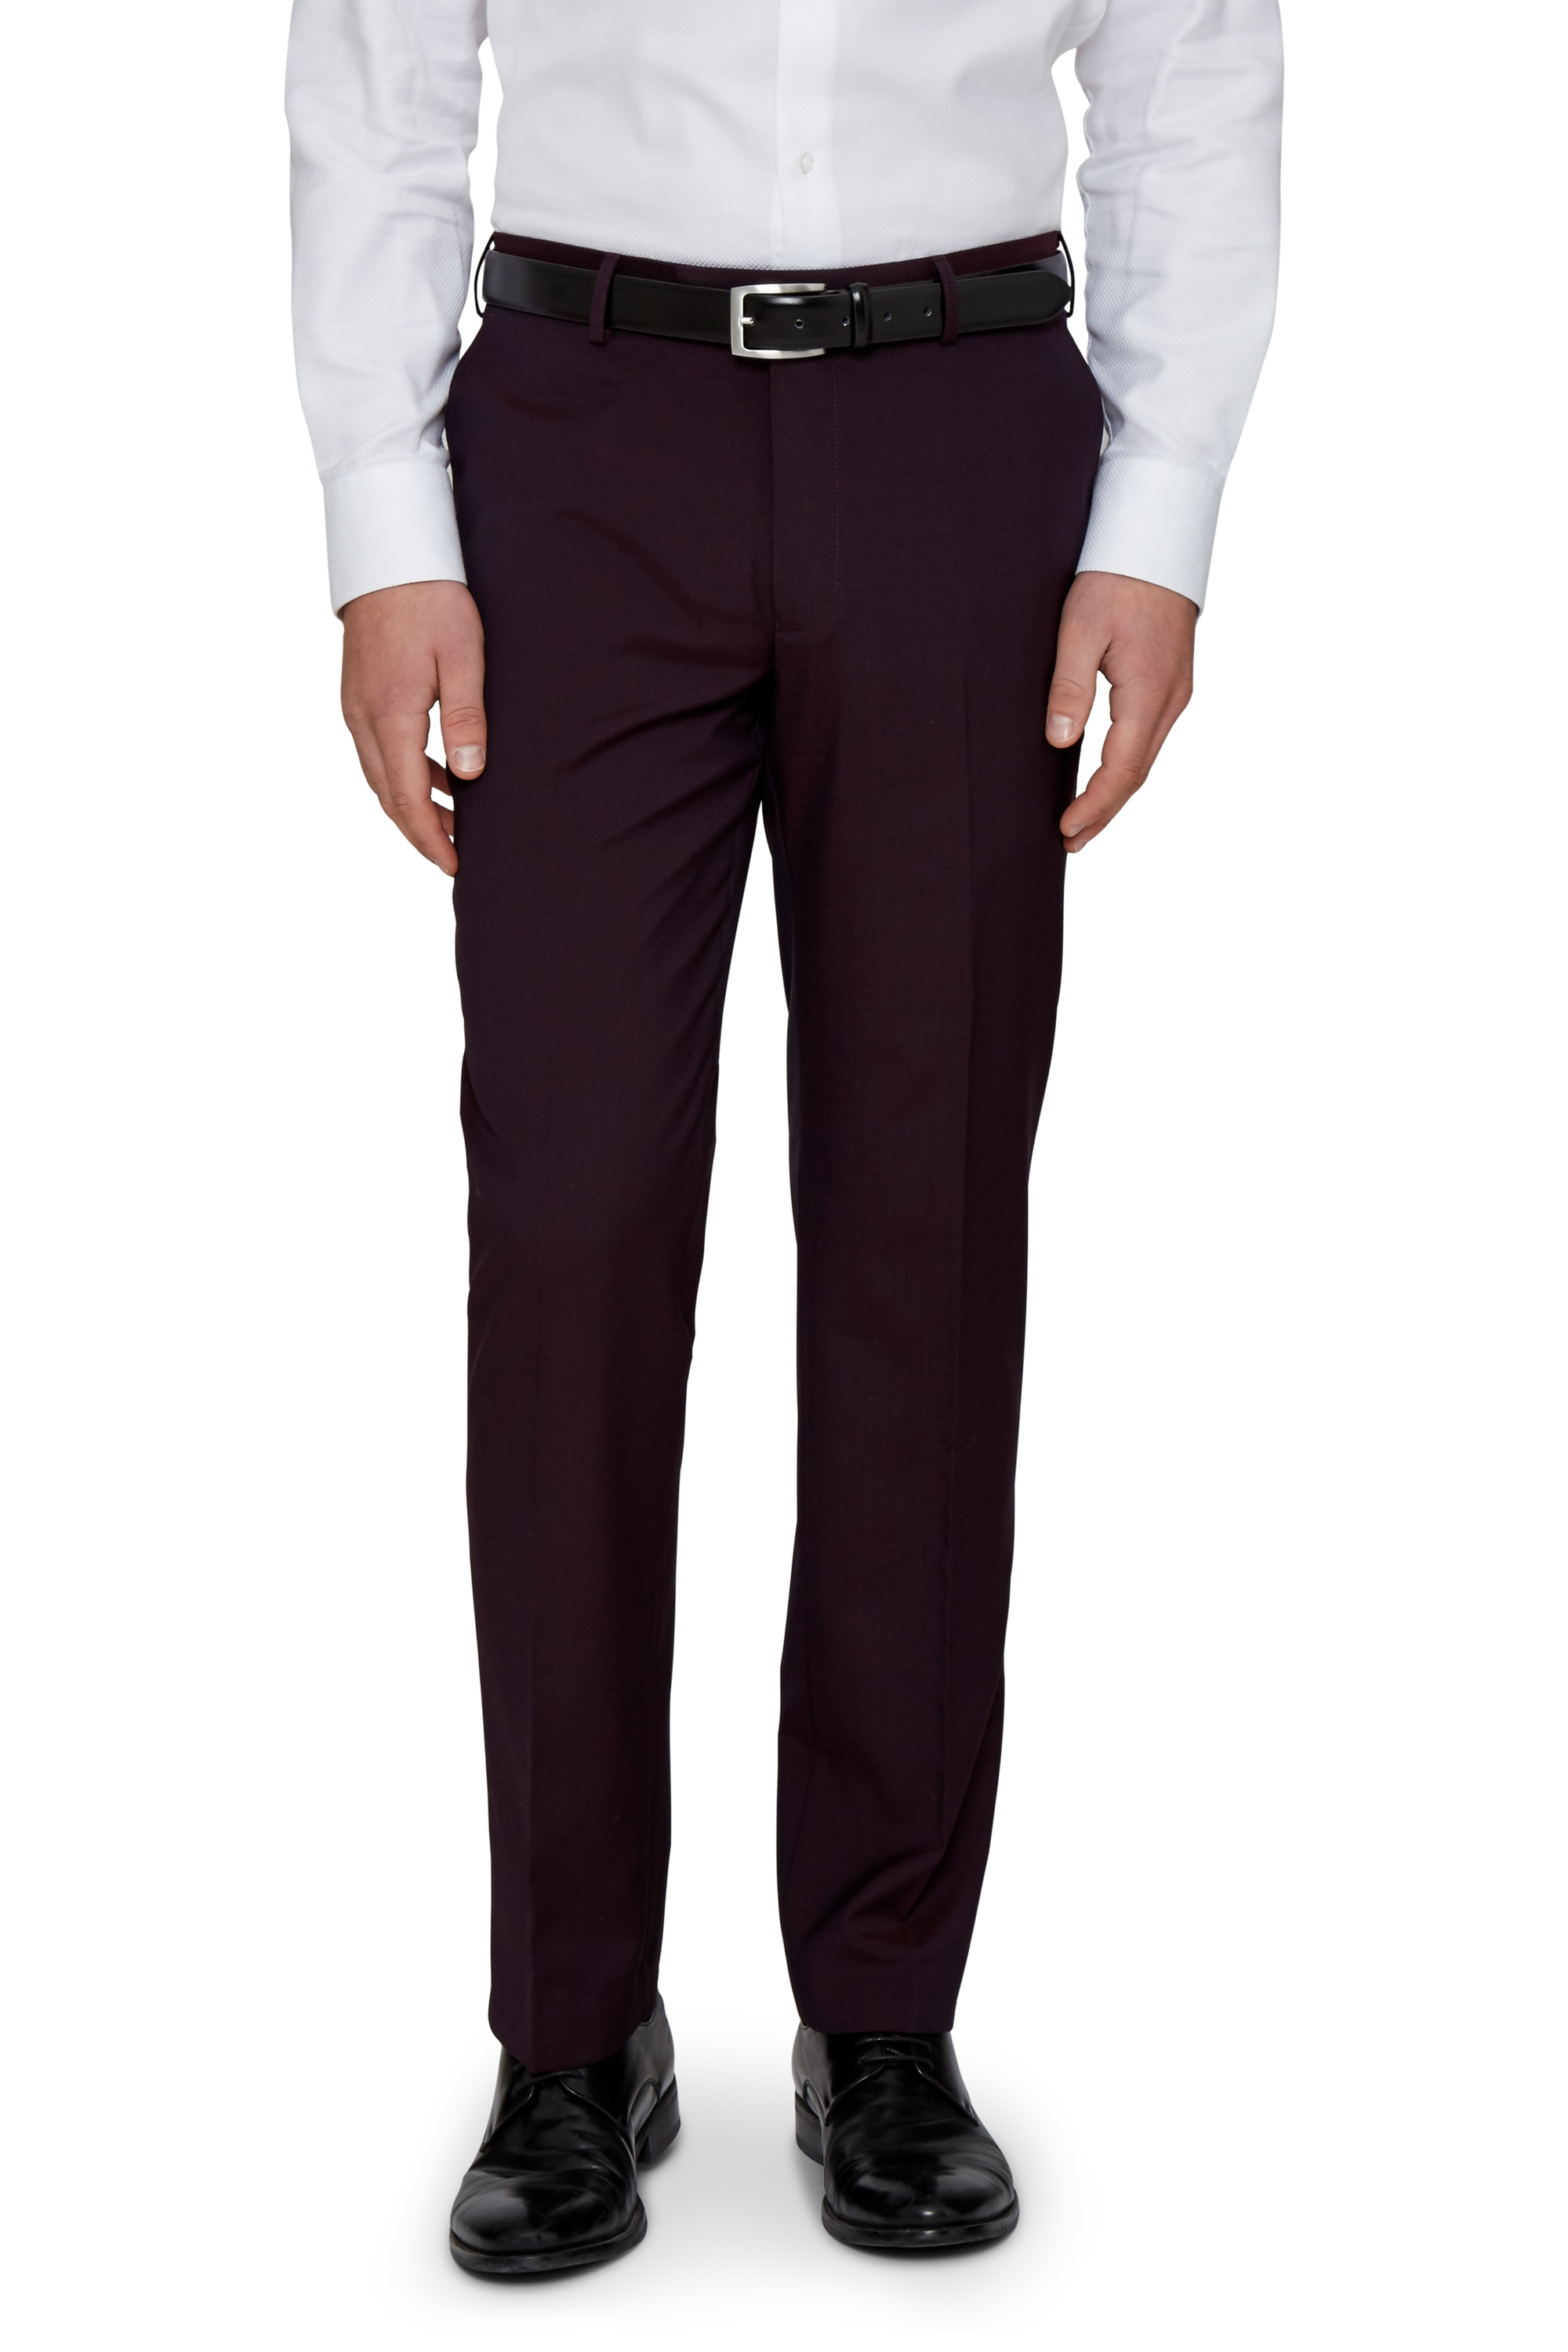 Moss 1851 Mens Burgundy Red Suit Trousers Tailored Fit Pleated Formal Pants | EBay